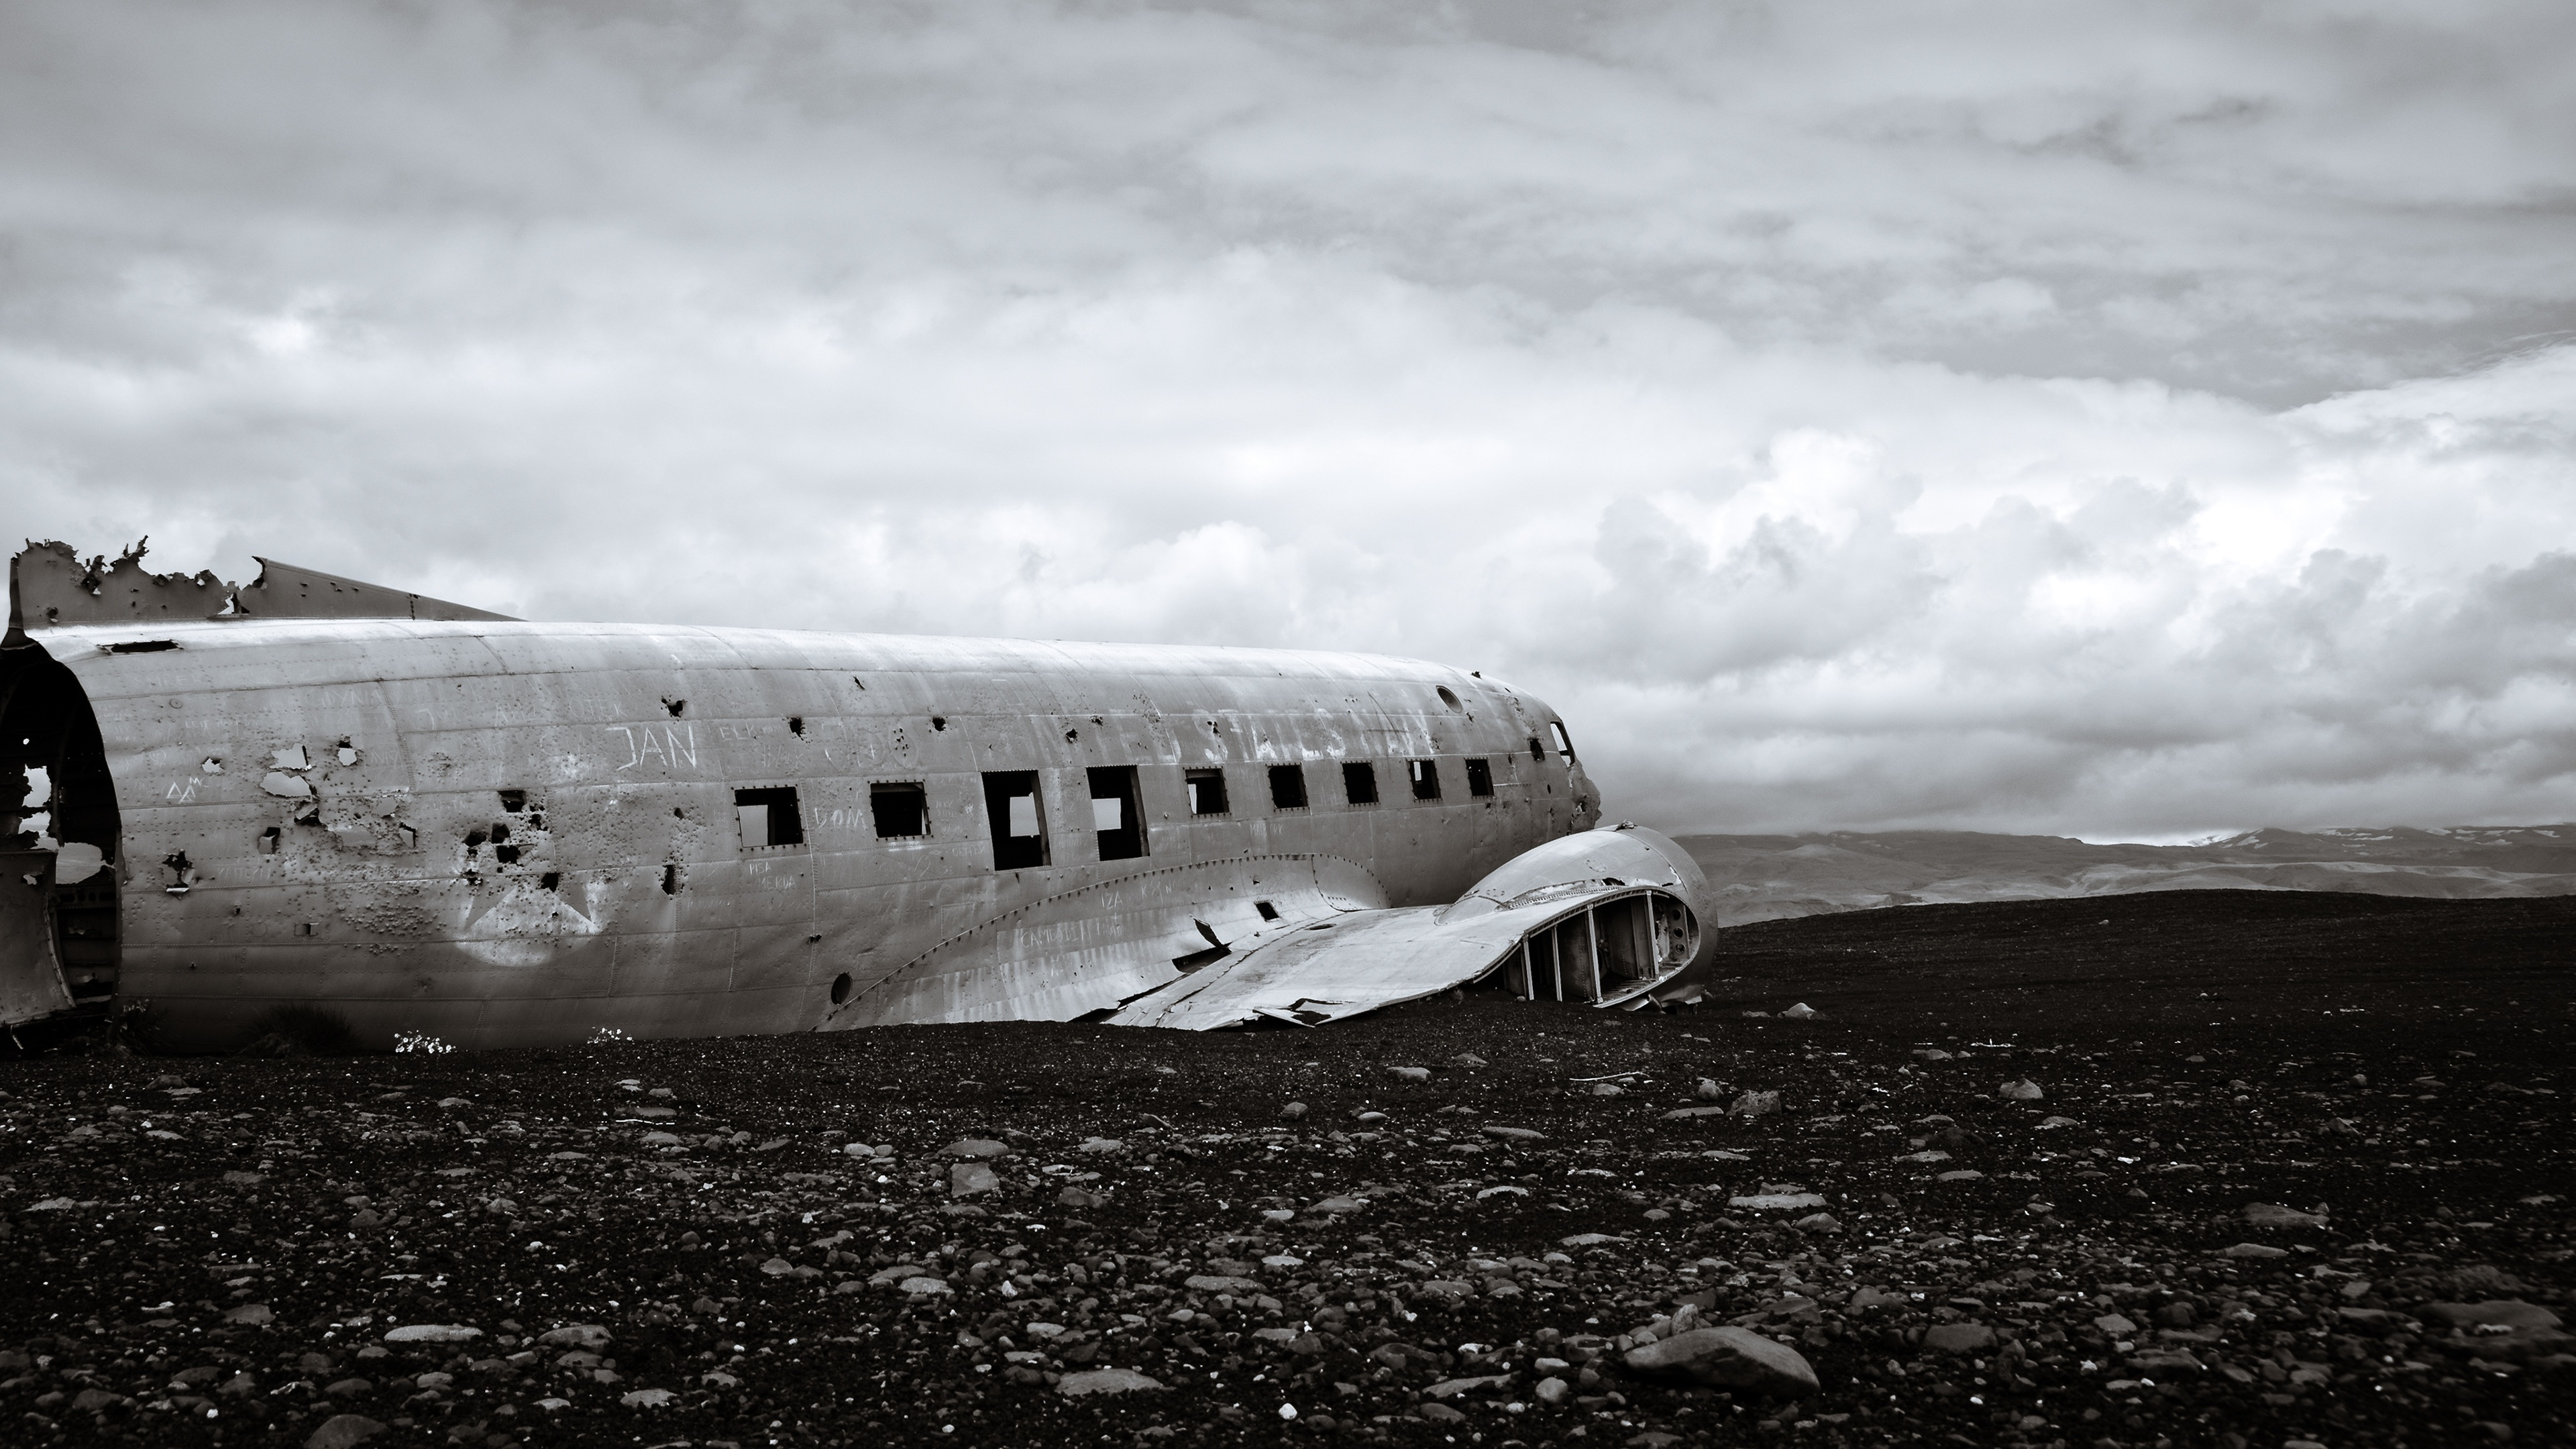 DC3_Plane_Wreckage_Iceland